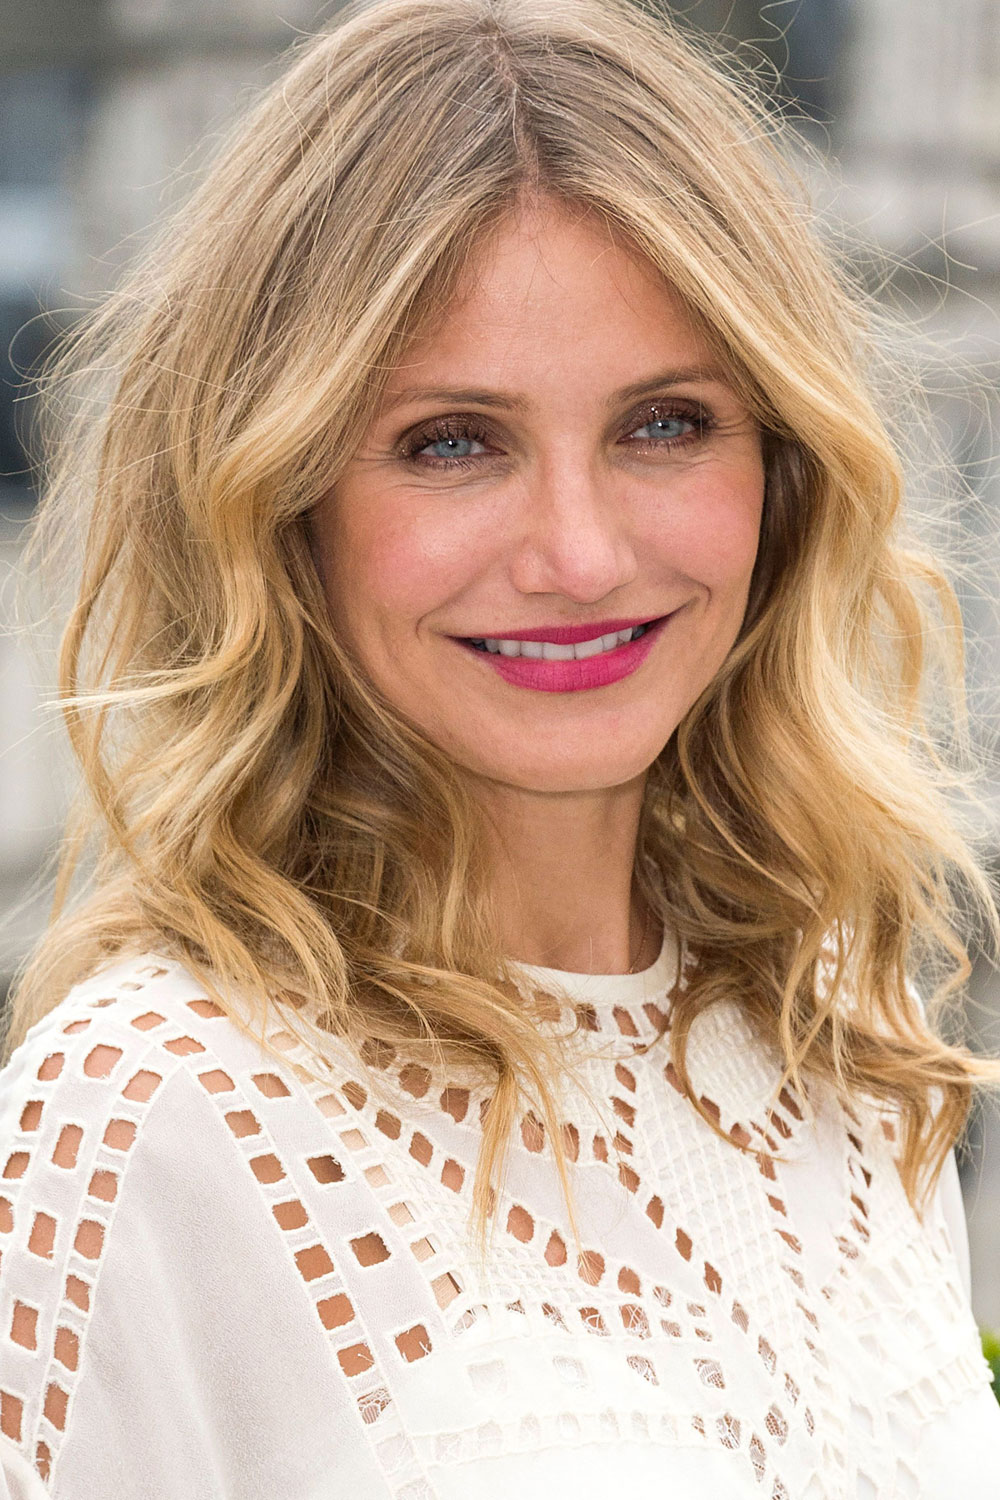 hairstyles for round faces: the best celebrity styles to inspire you